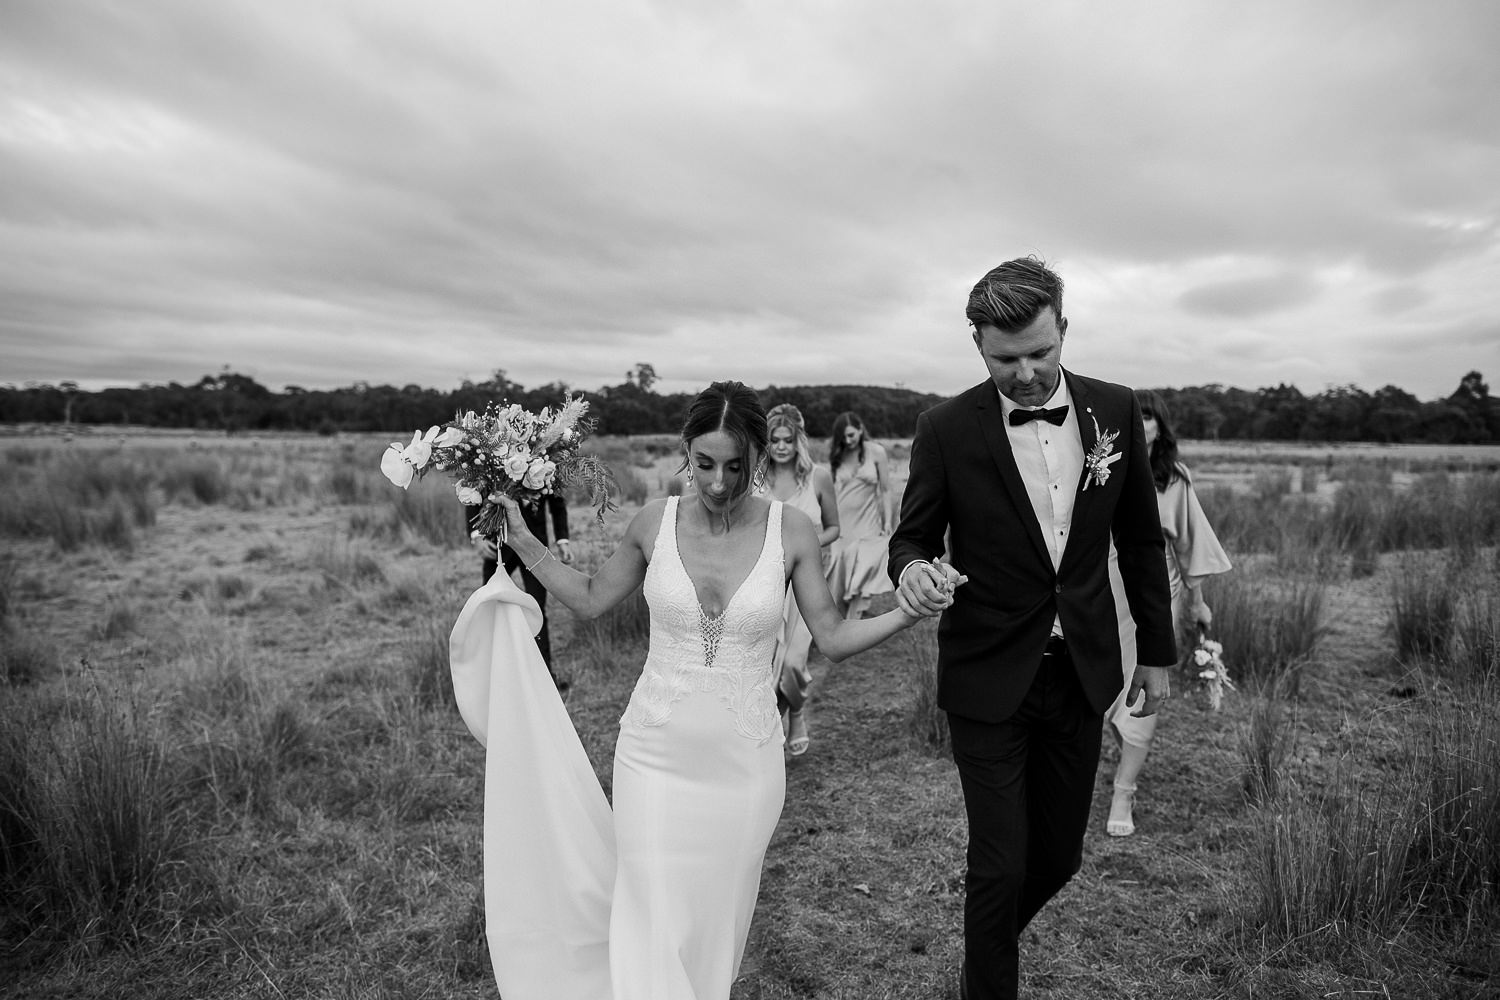 private-property-wedding-relaxed-melbourne-fun-documentary-photography_0148.jpg